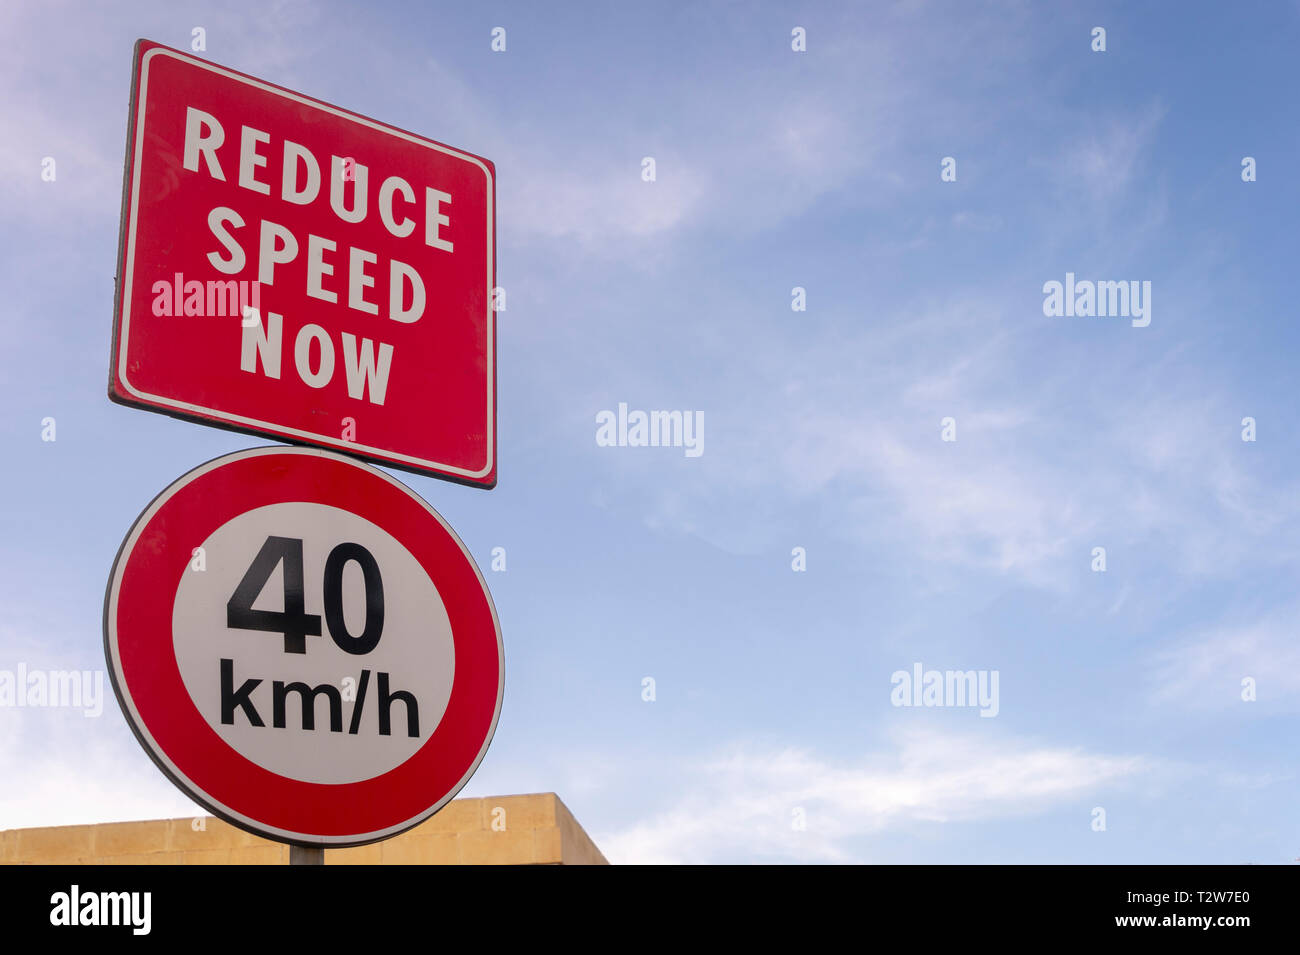 Reduce speed now, 40 KMH, road sign Stock Photo